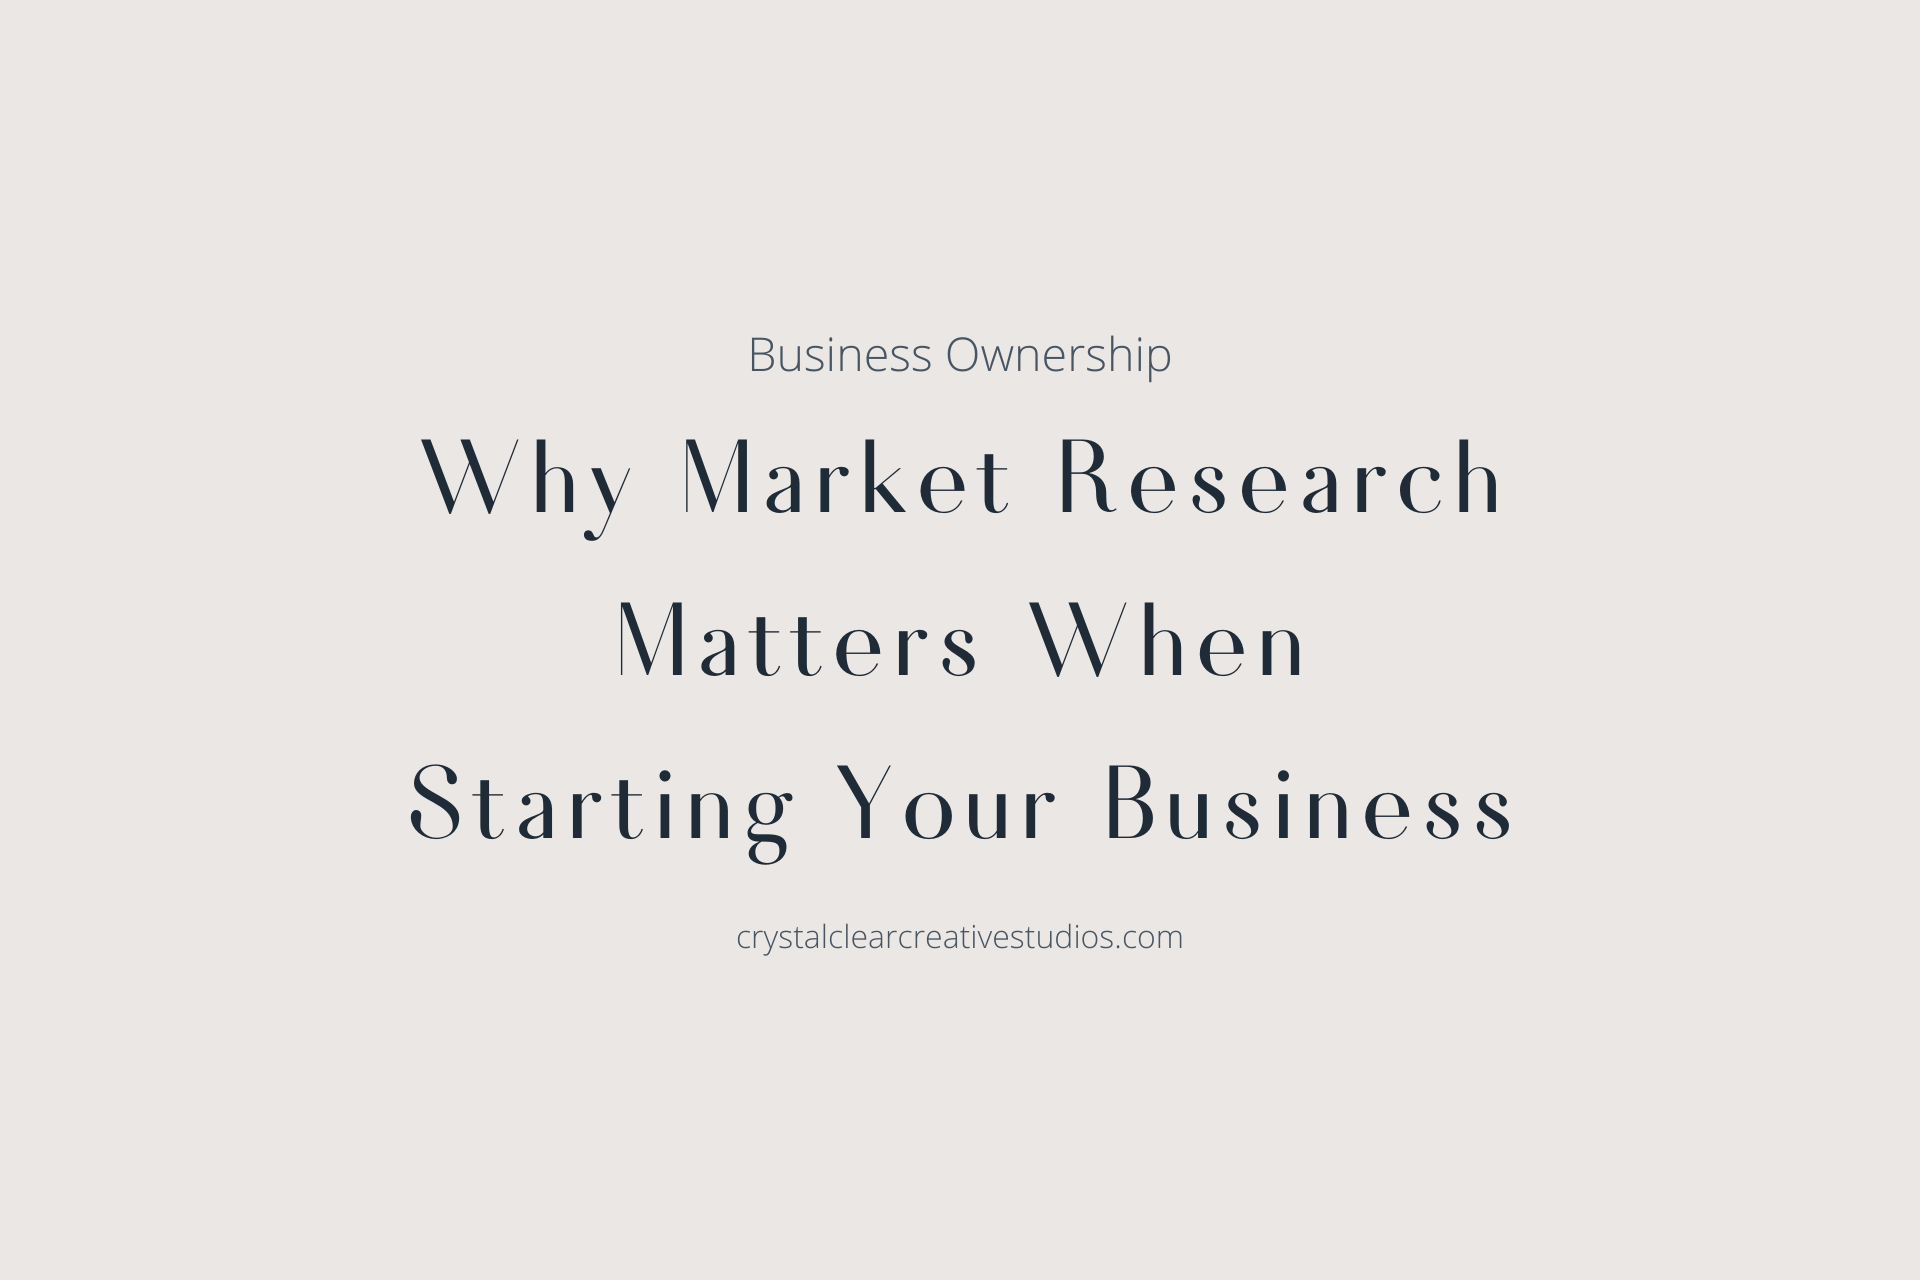 Why Market Research Matters When Starting Your Business